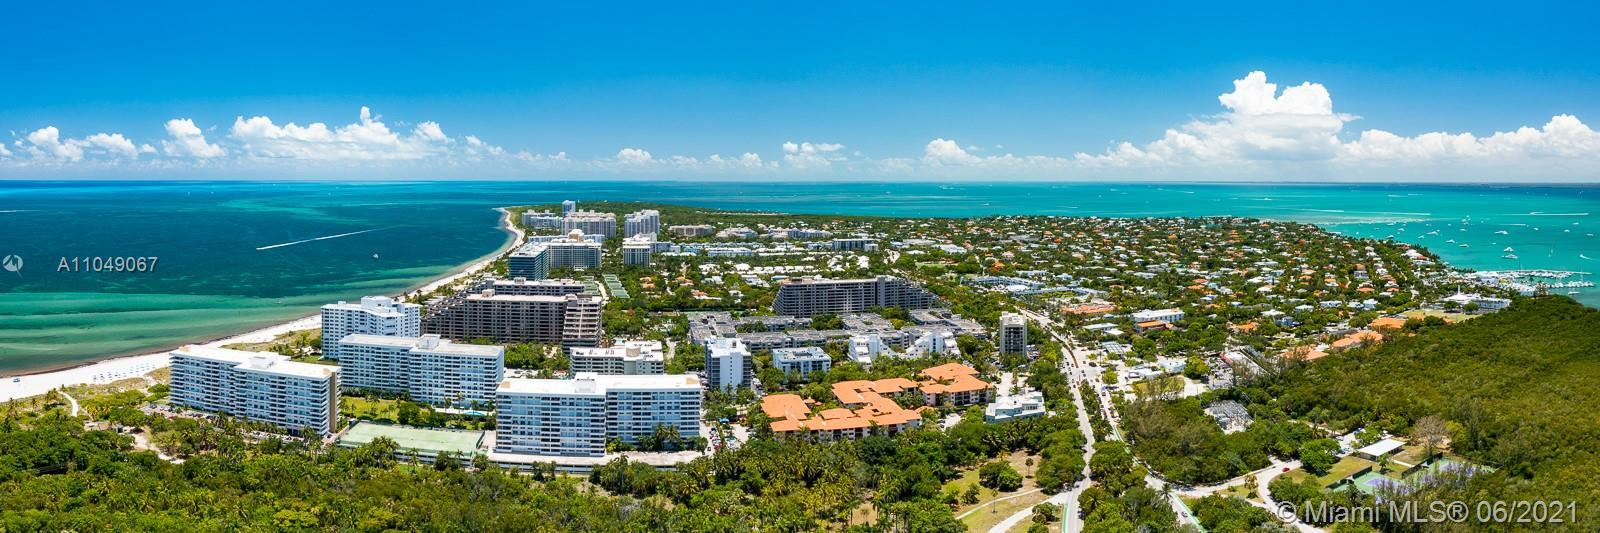 Commodore Club - condos for sale in Key Biscayne